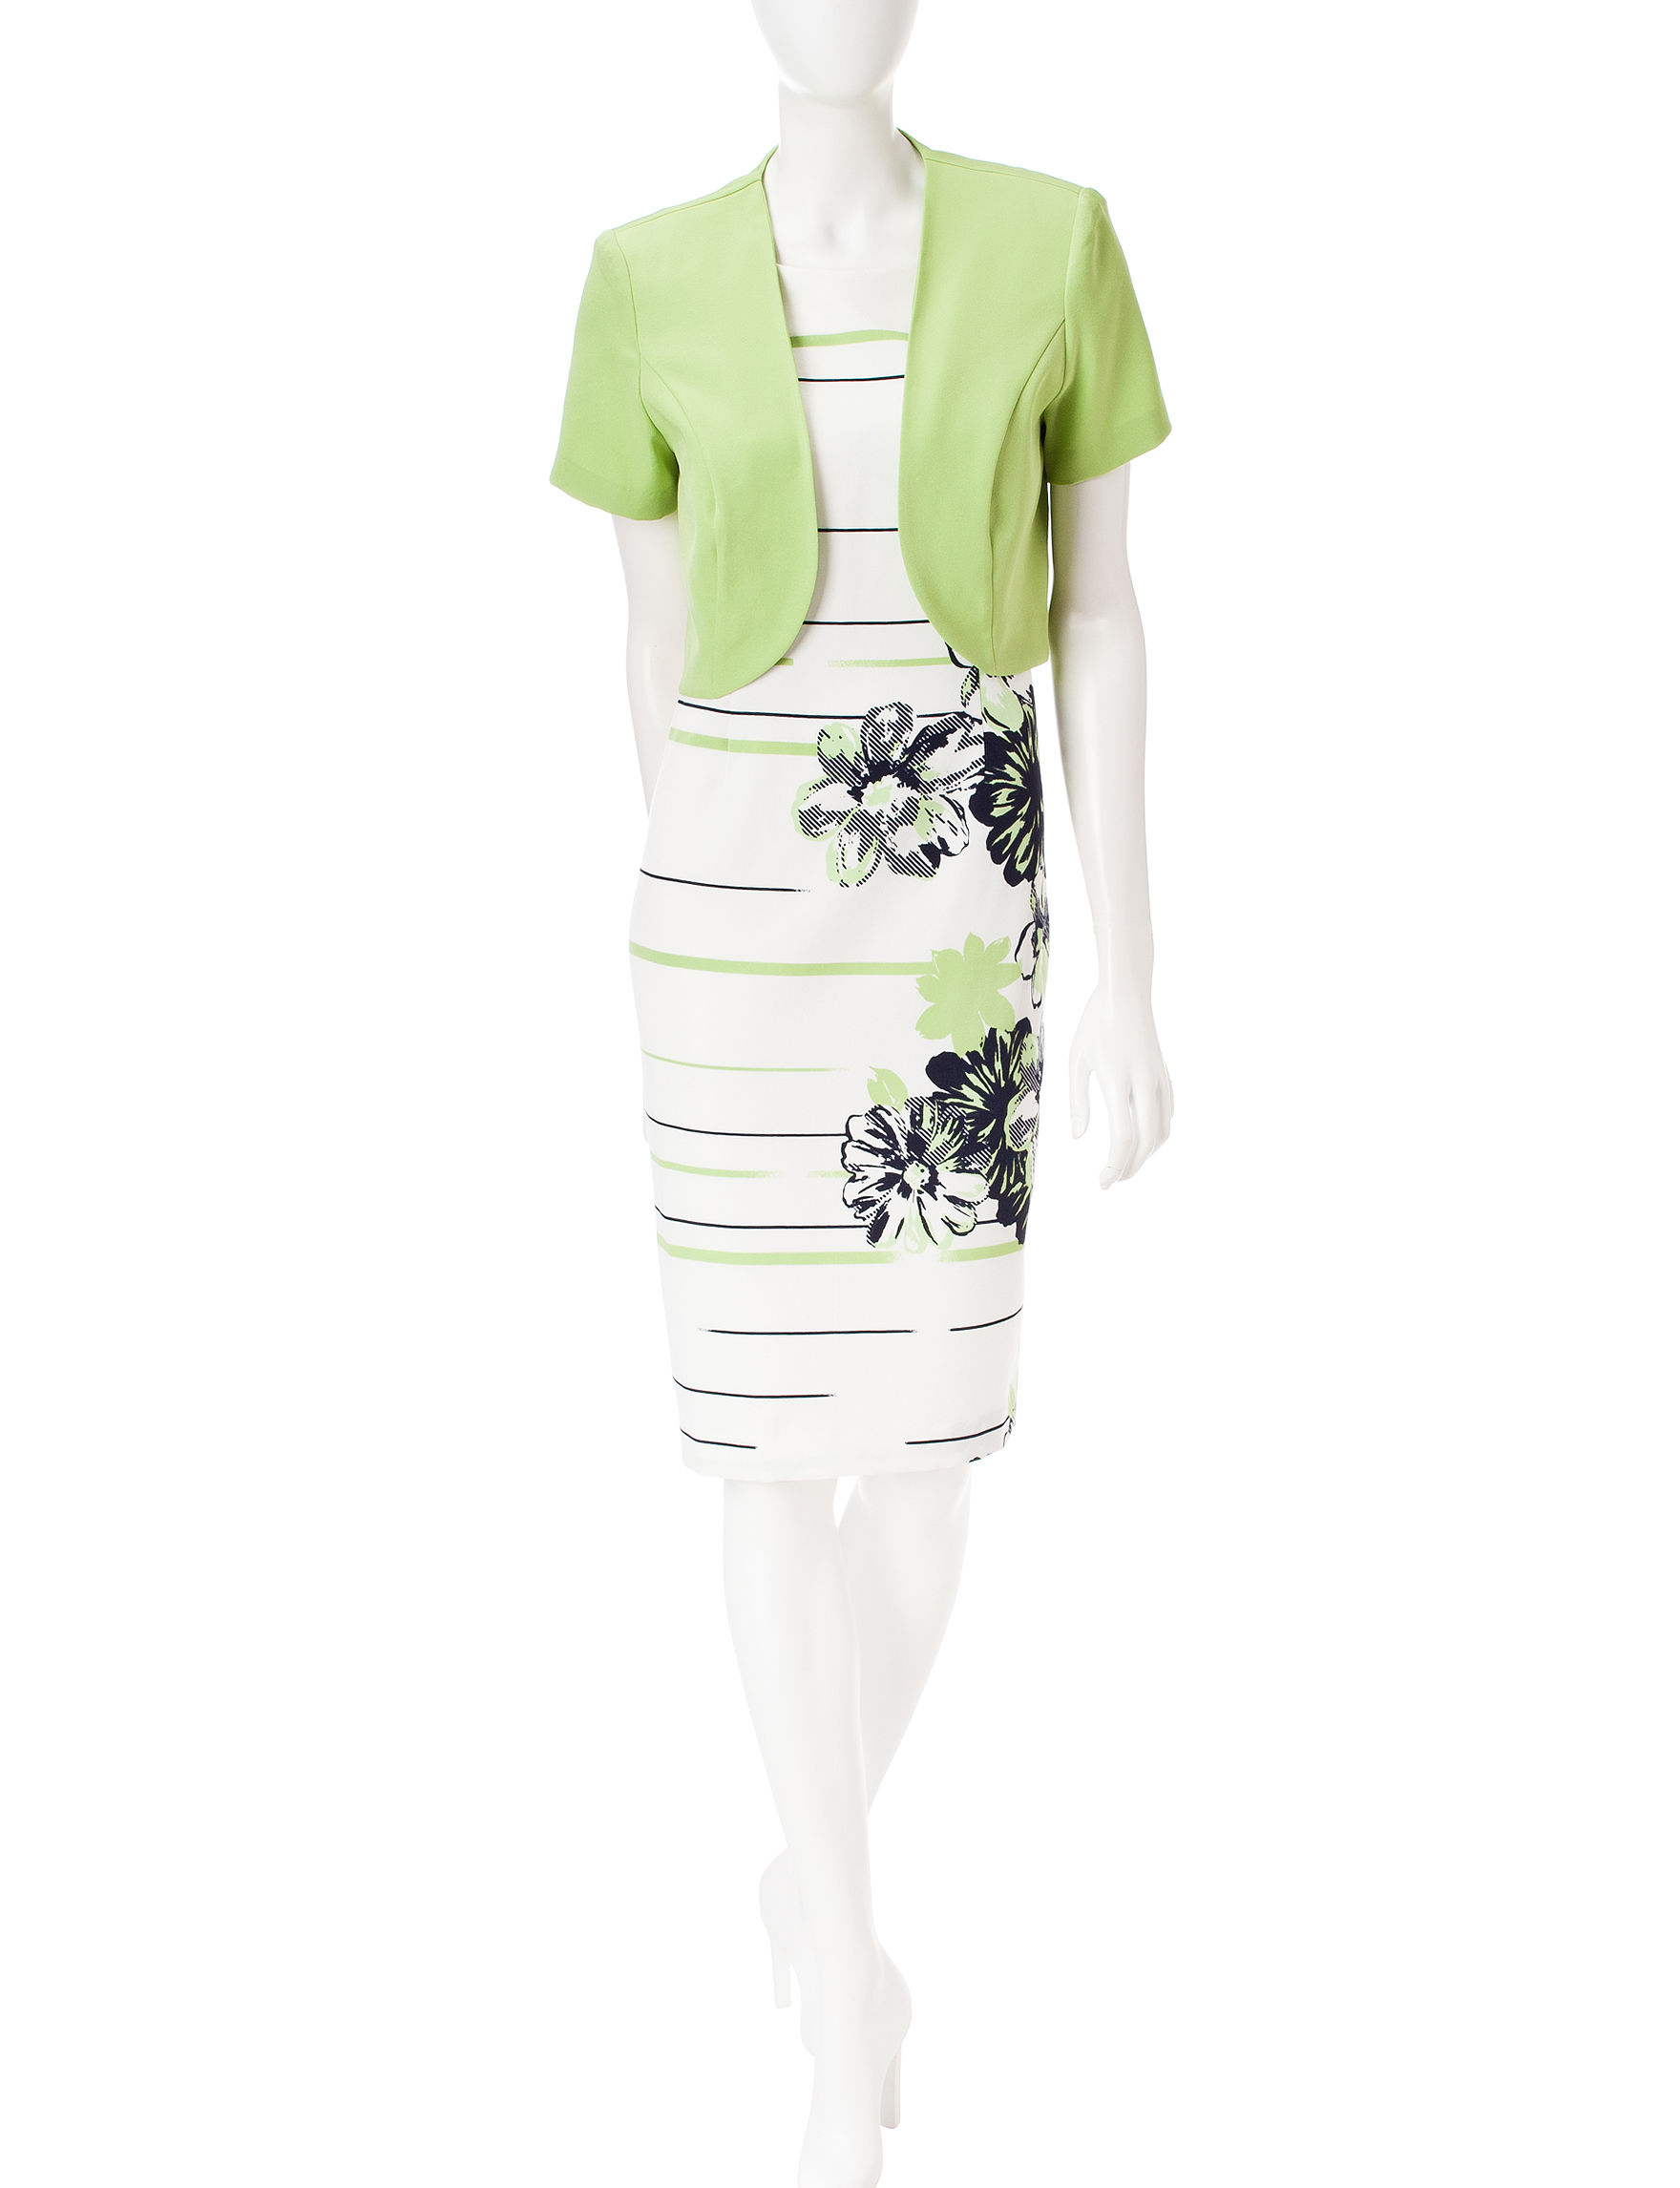 Dana Kay Green / White Everyday & Casual Jacket Dresses